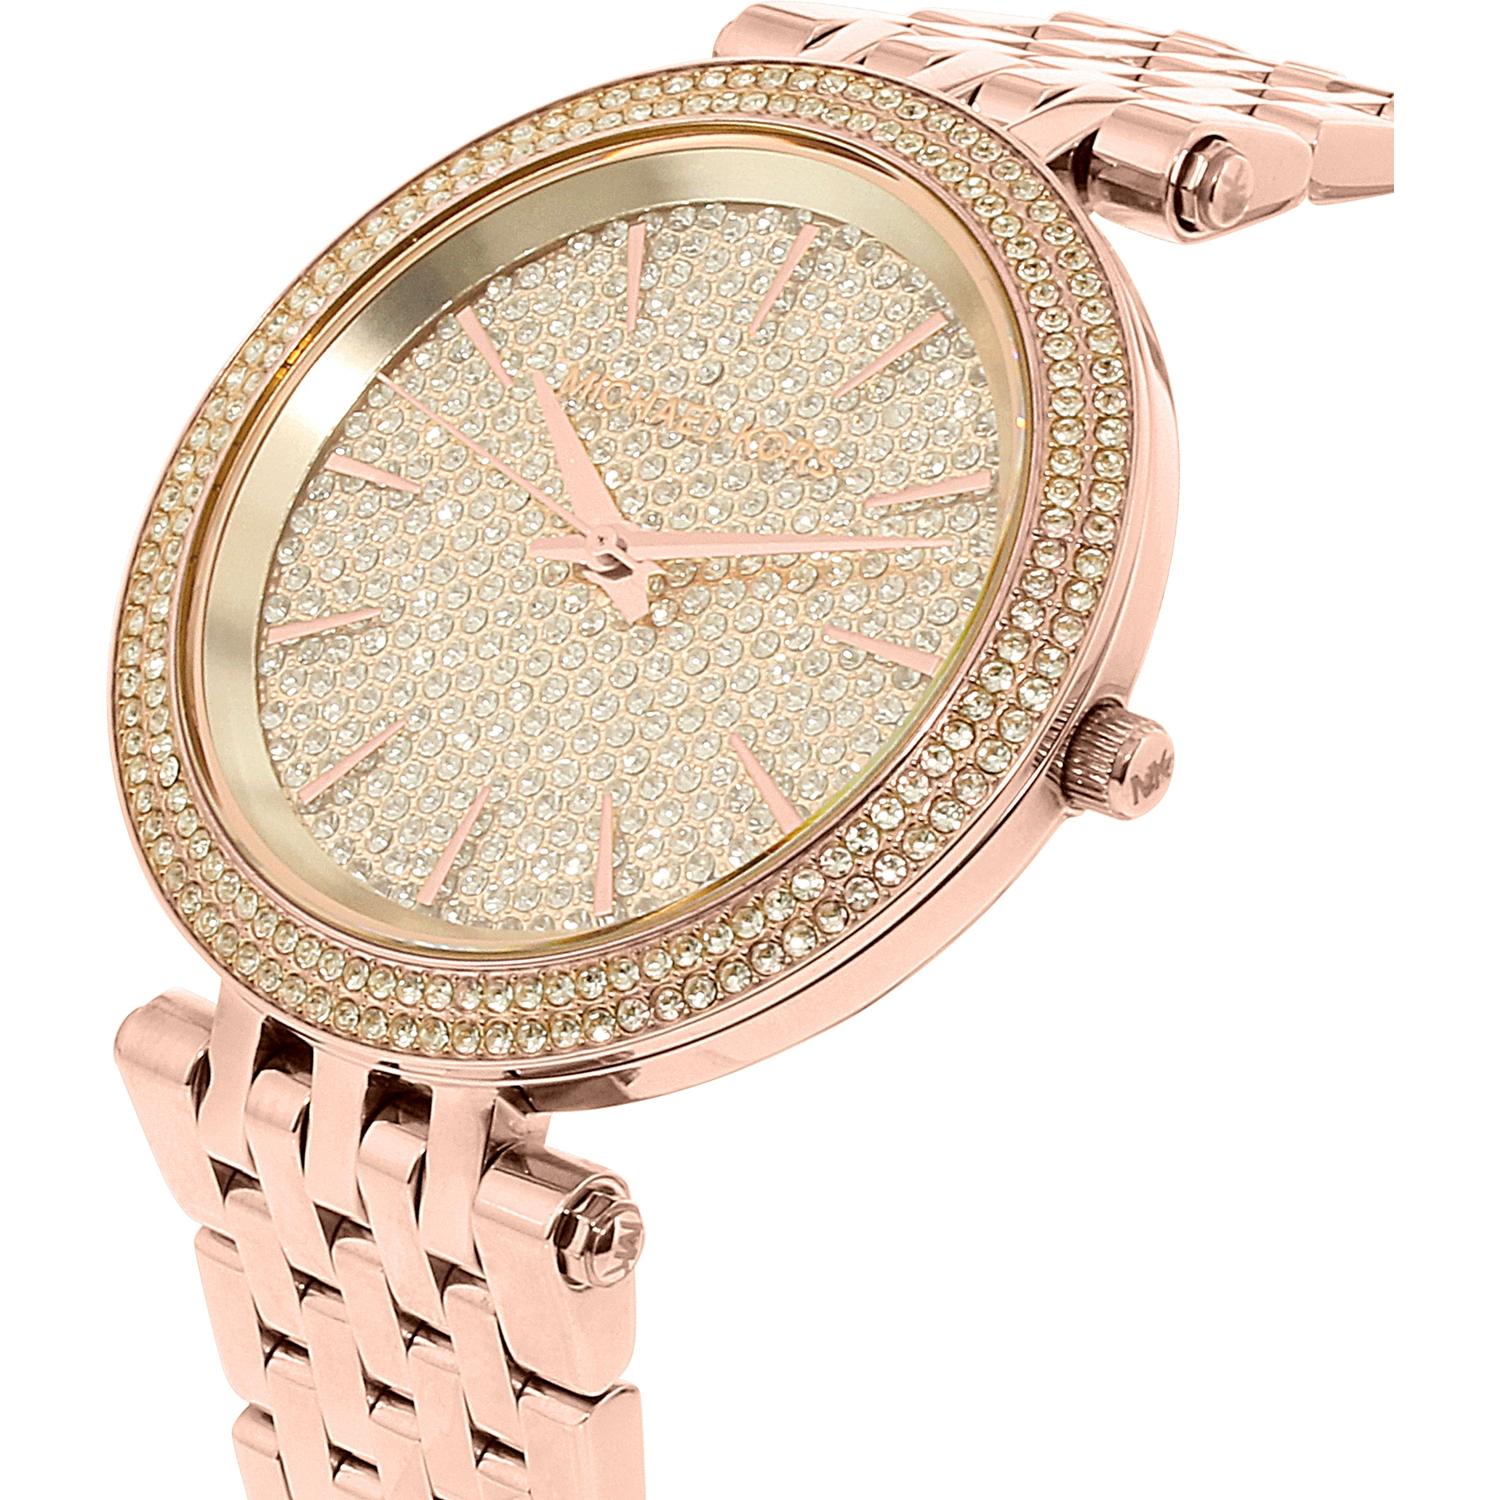 79b3ddc4cd1c1 ... Stainless Steel Quartz Watch. Michael Kors Women S Darci Mk3439 Rose  Gold Stainless